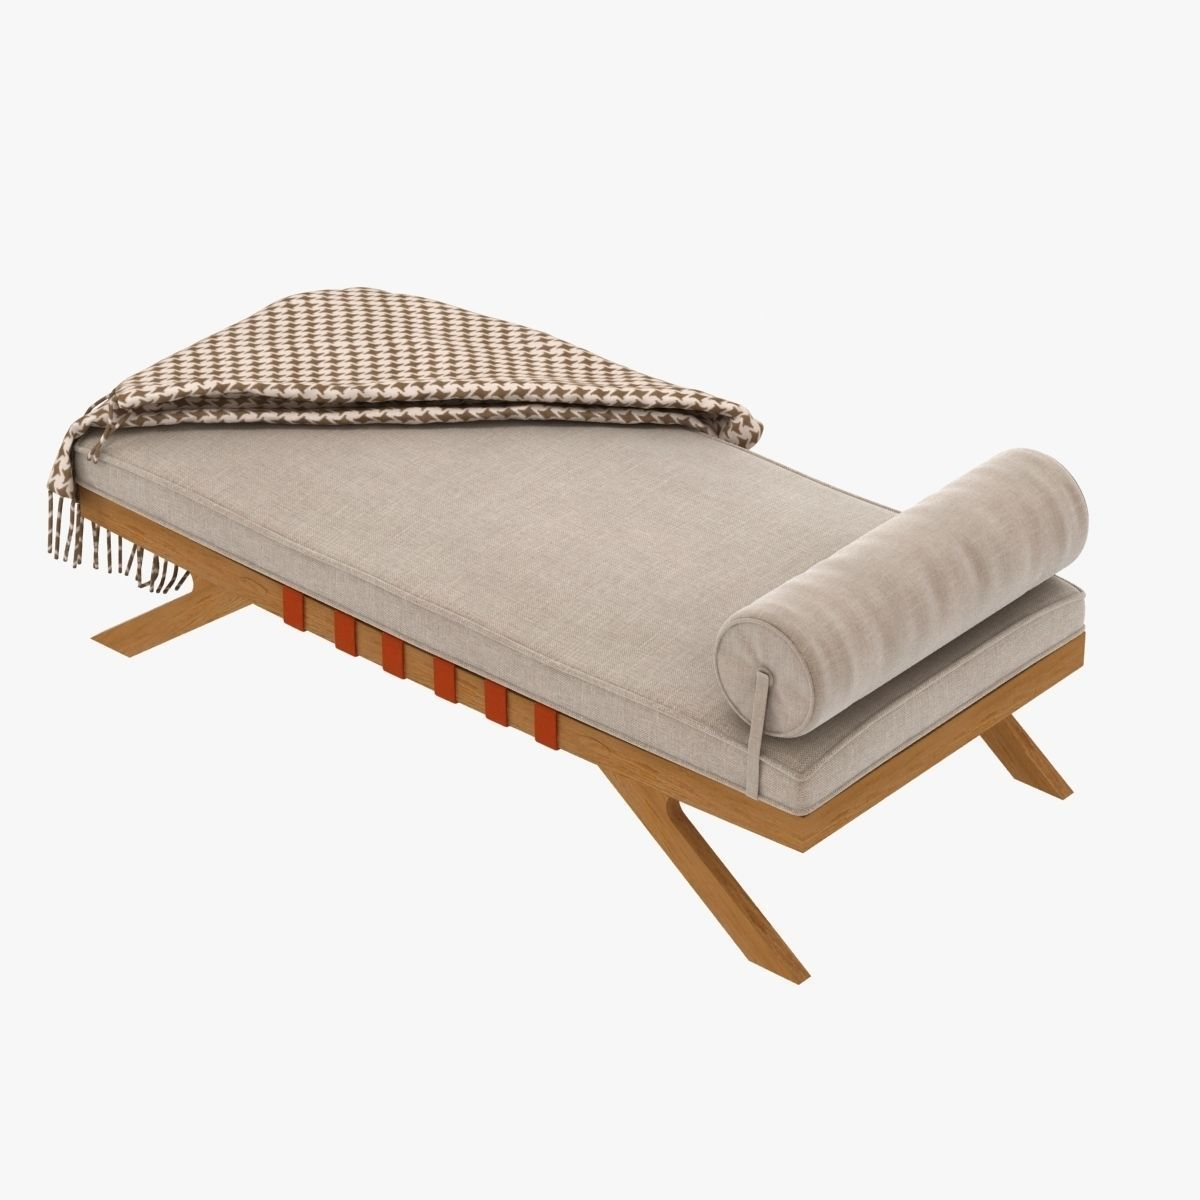 Mid century chaise lounge 3d model max obj 3ds fbx for Century furniture chaise lounge